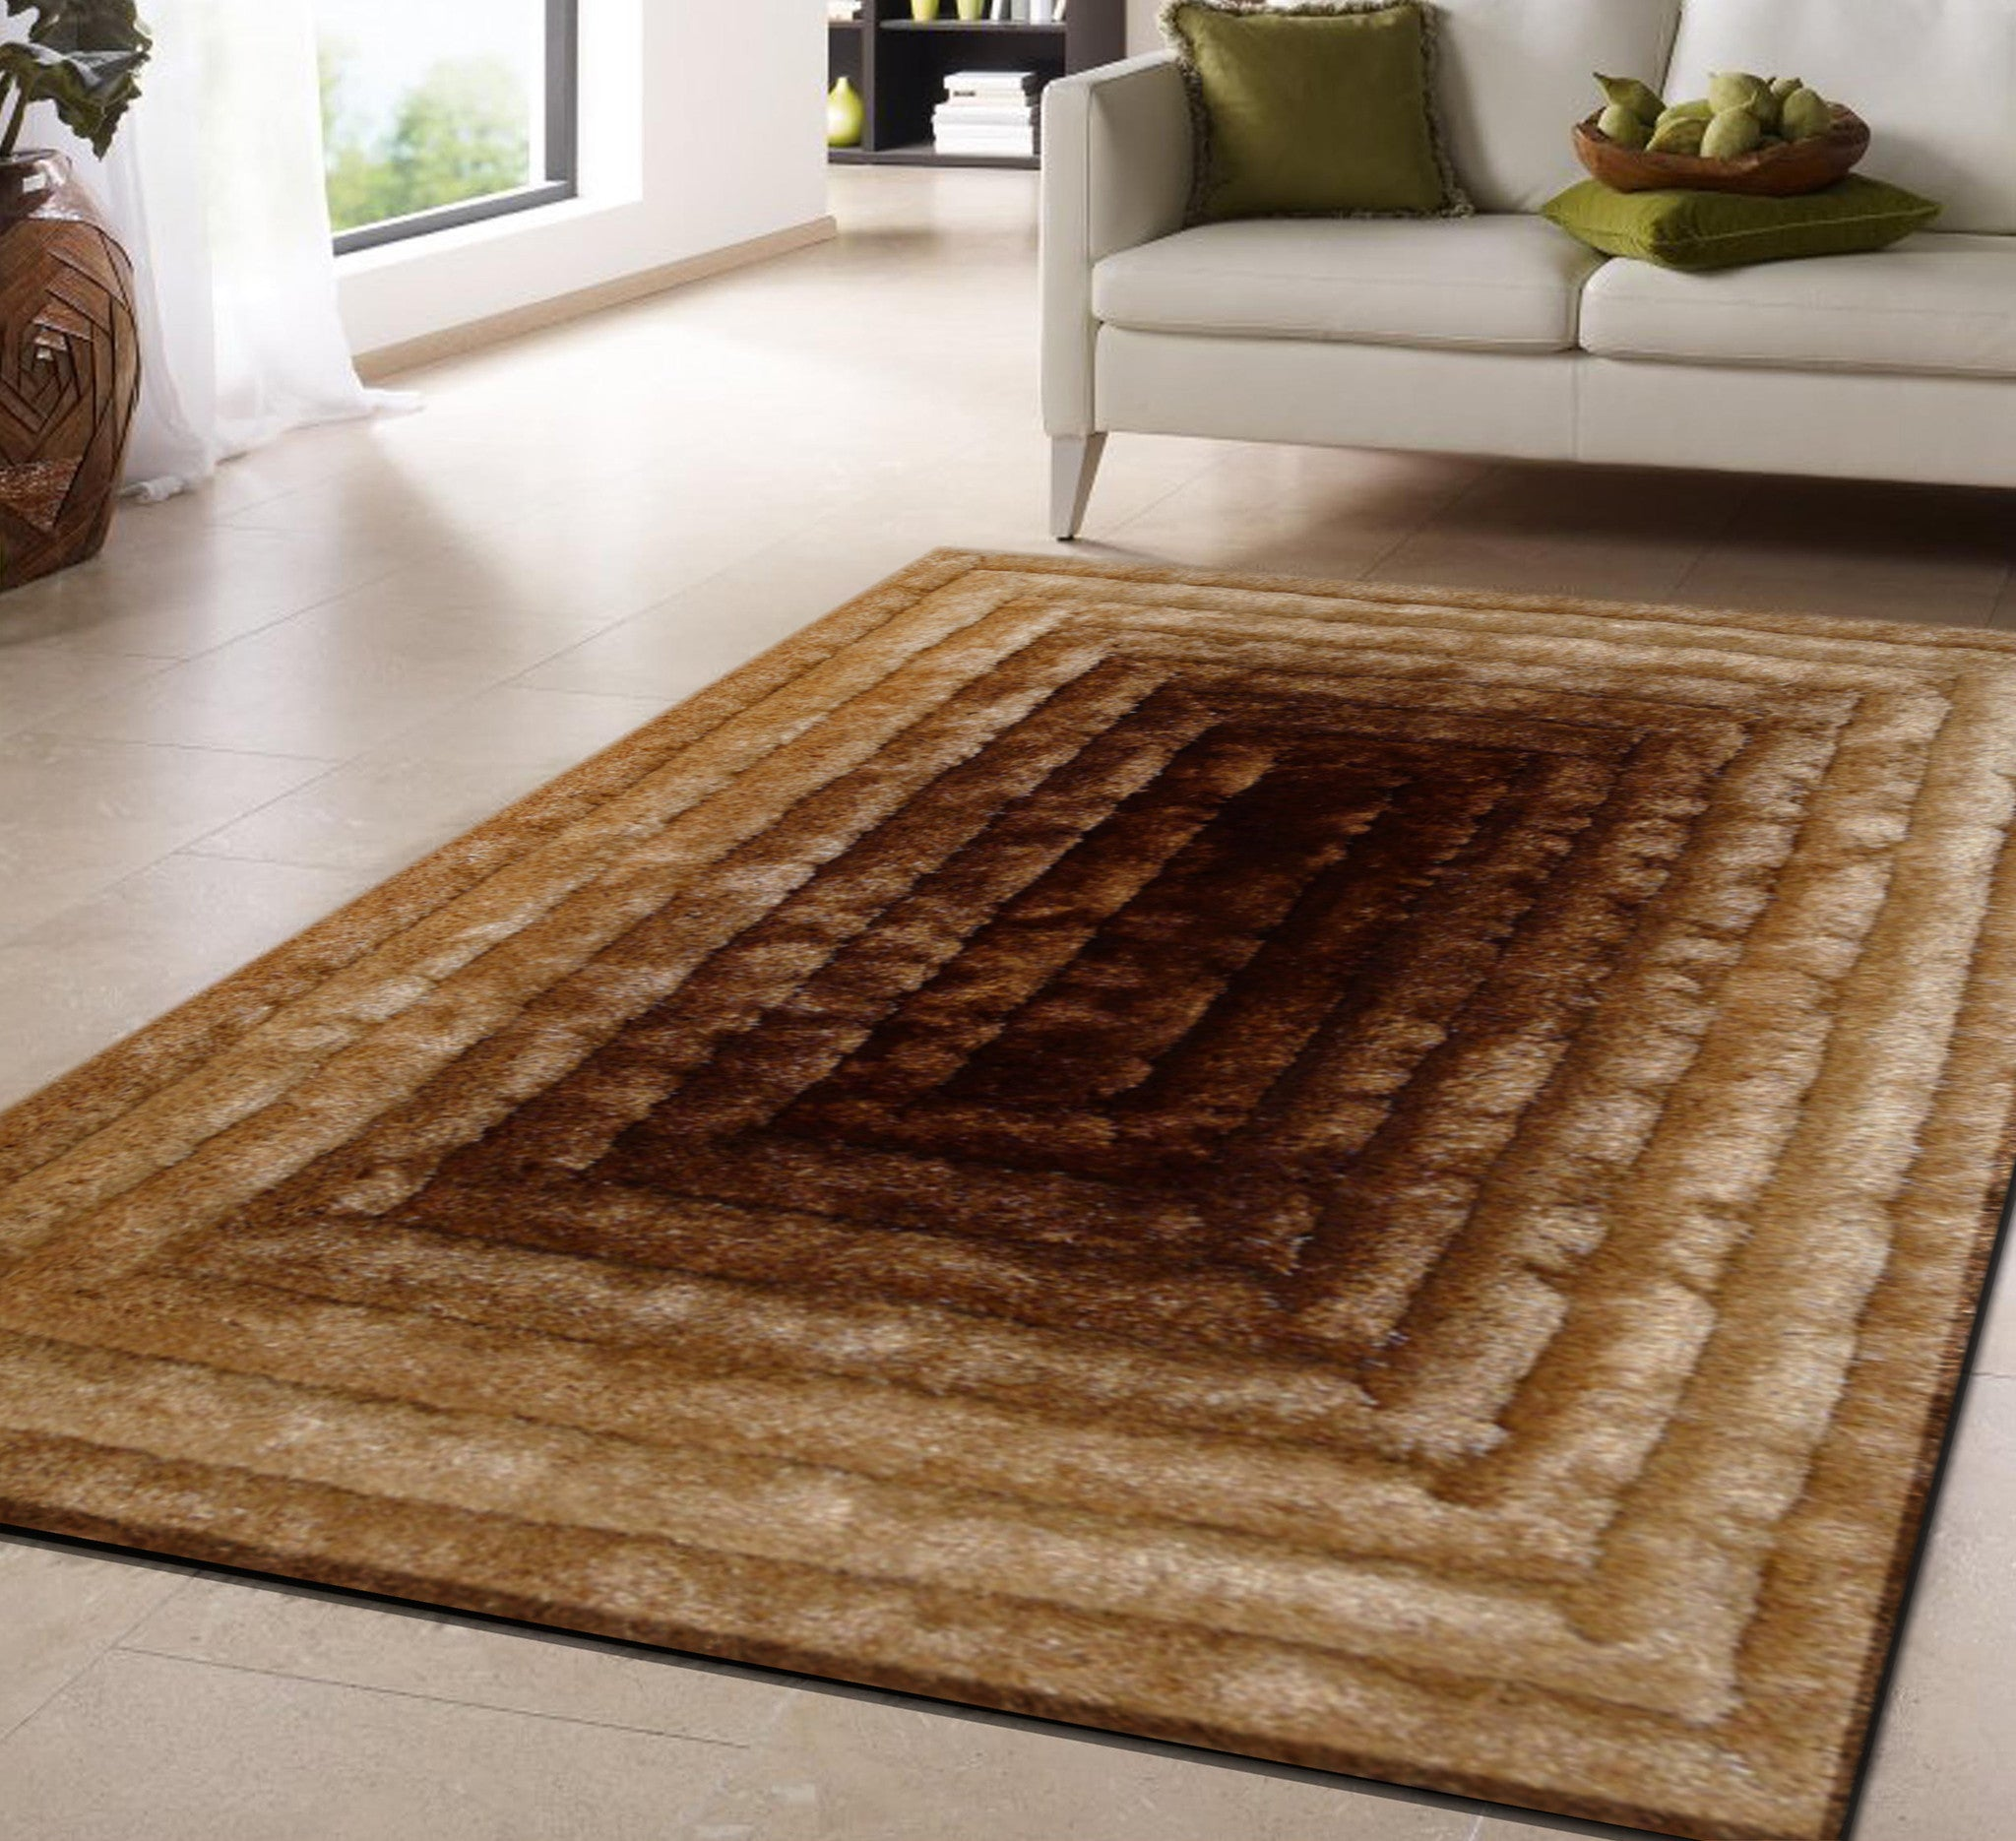 Exceptional Handmade Vibrant Gold Brown 3 Dimensional Shag Area Rug With Hand Carved  Design 5u0027 X ...